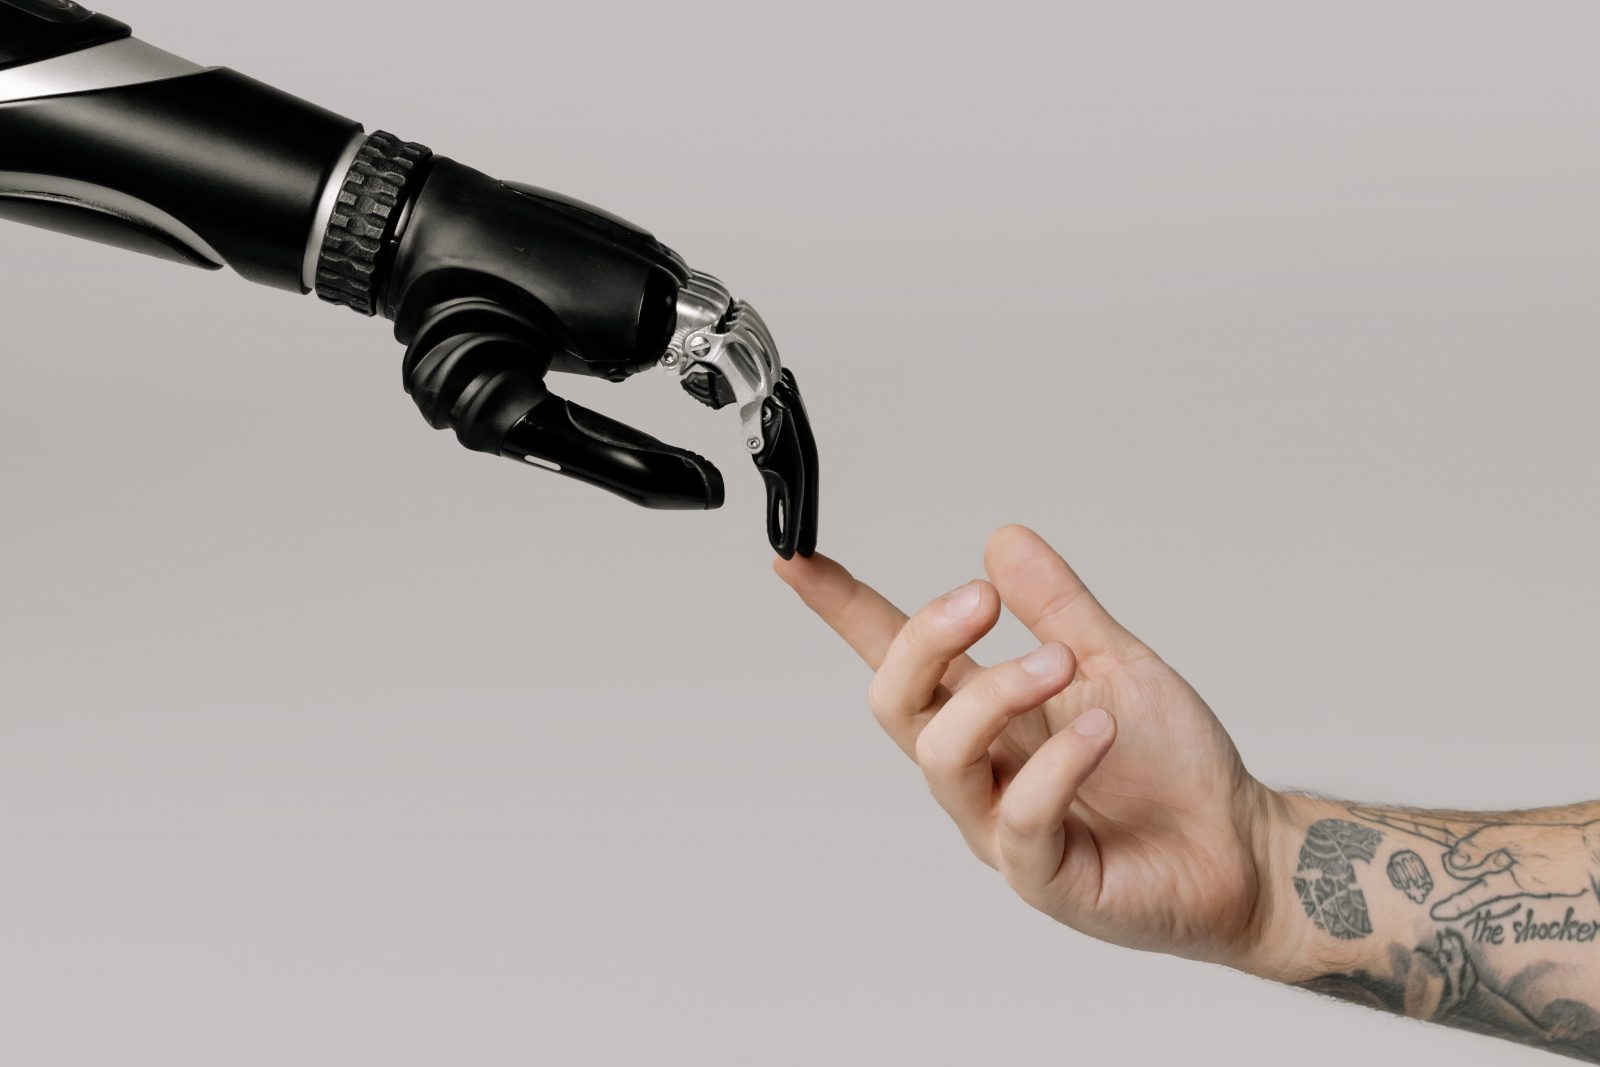 Use of Robotics in Daily Lives